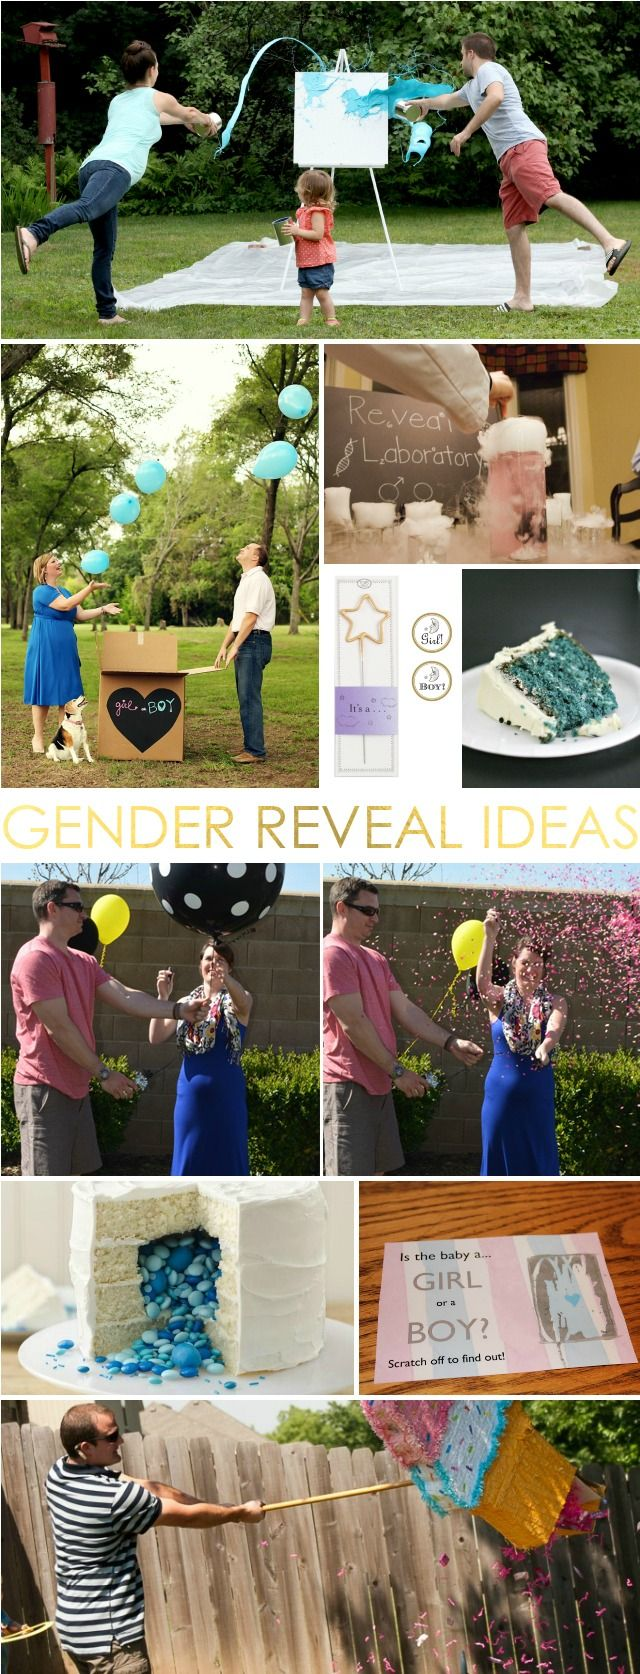 Ideas for the perfect gender reveal!